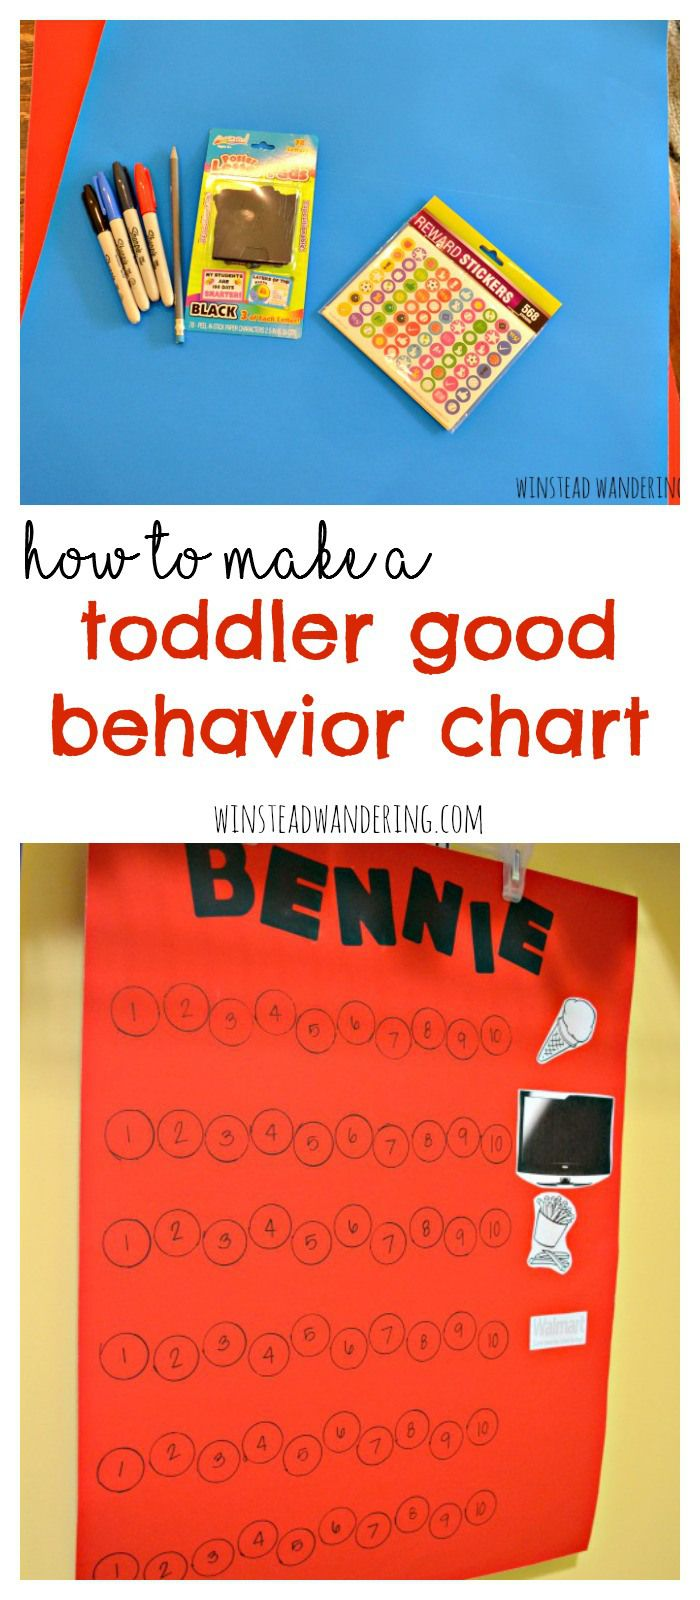 For a few dollars and less than an hour of your time, you can make a basic chart to reinforce and reward your toddler's good behavior (this idea would totally work for older kids, too!)